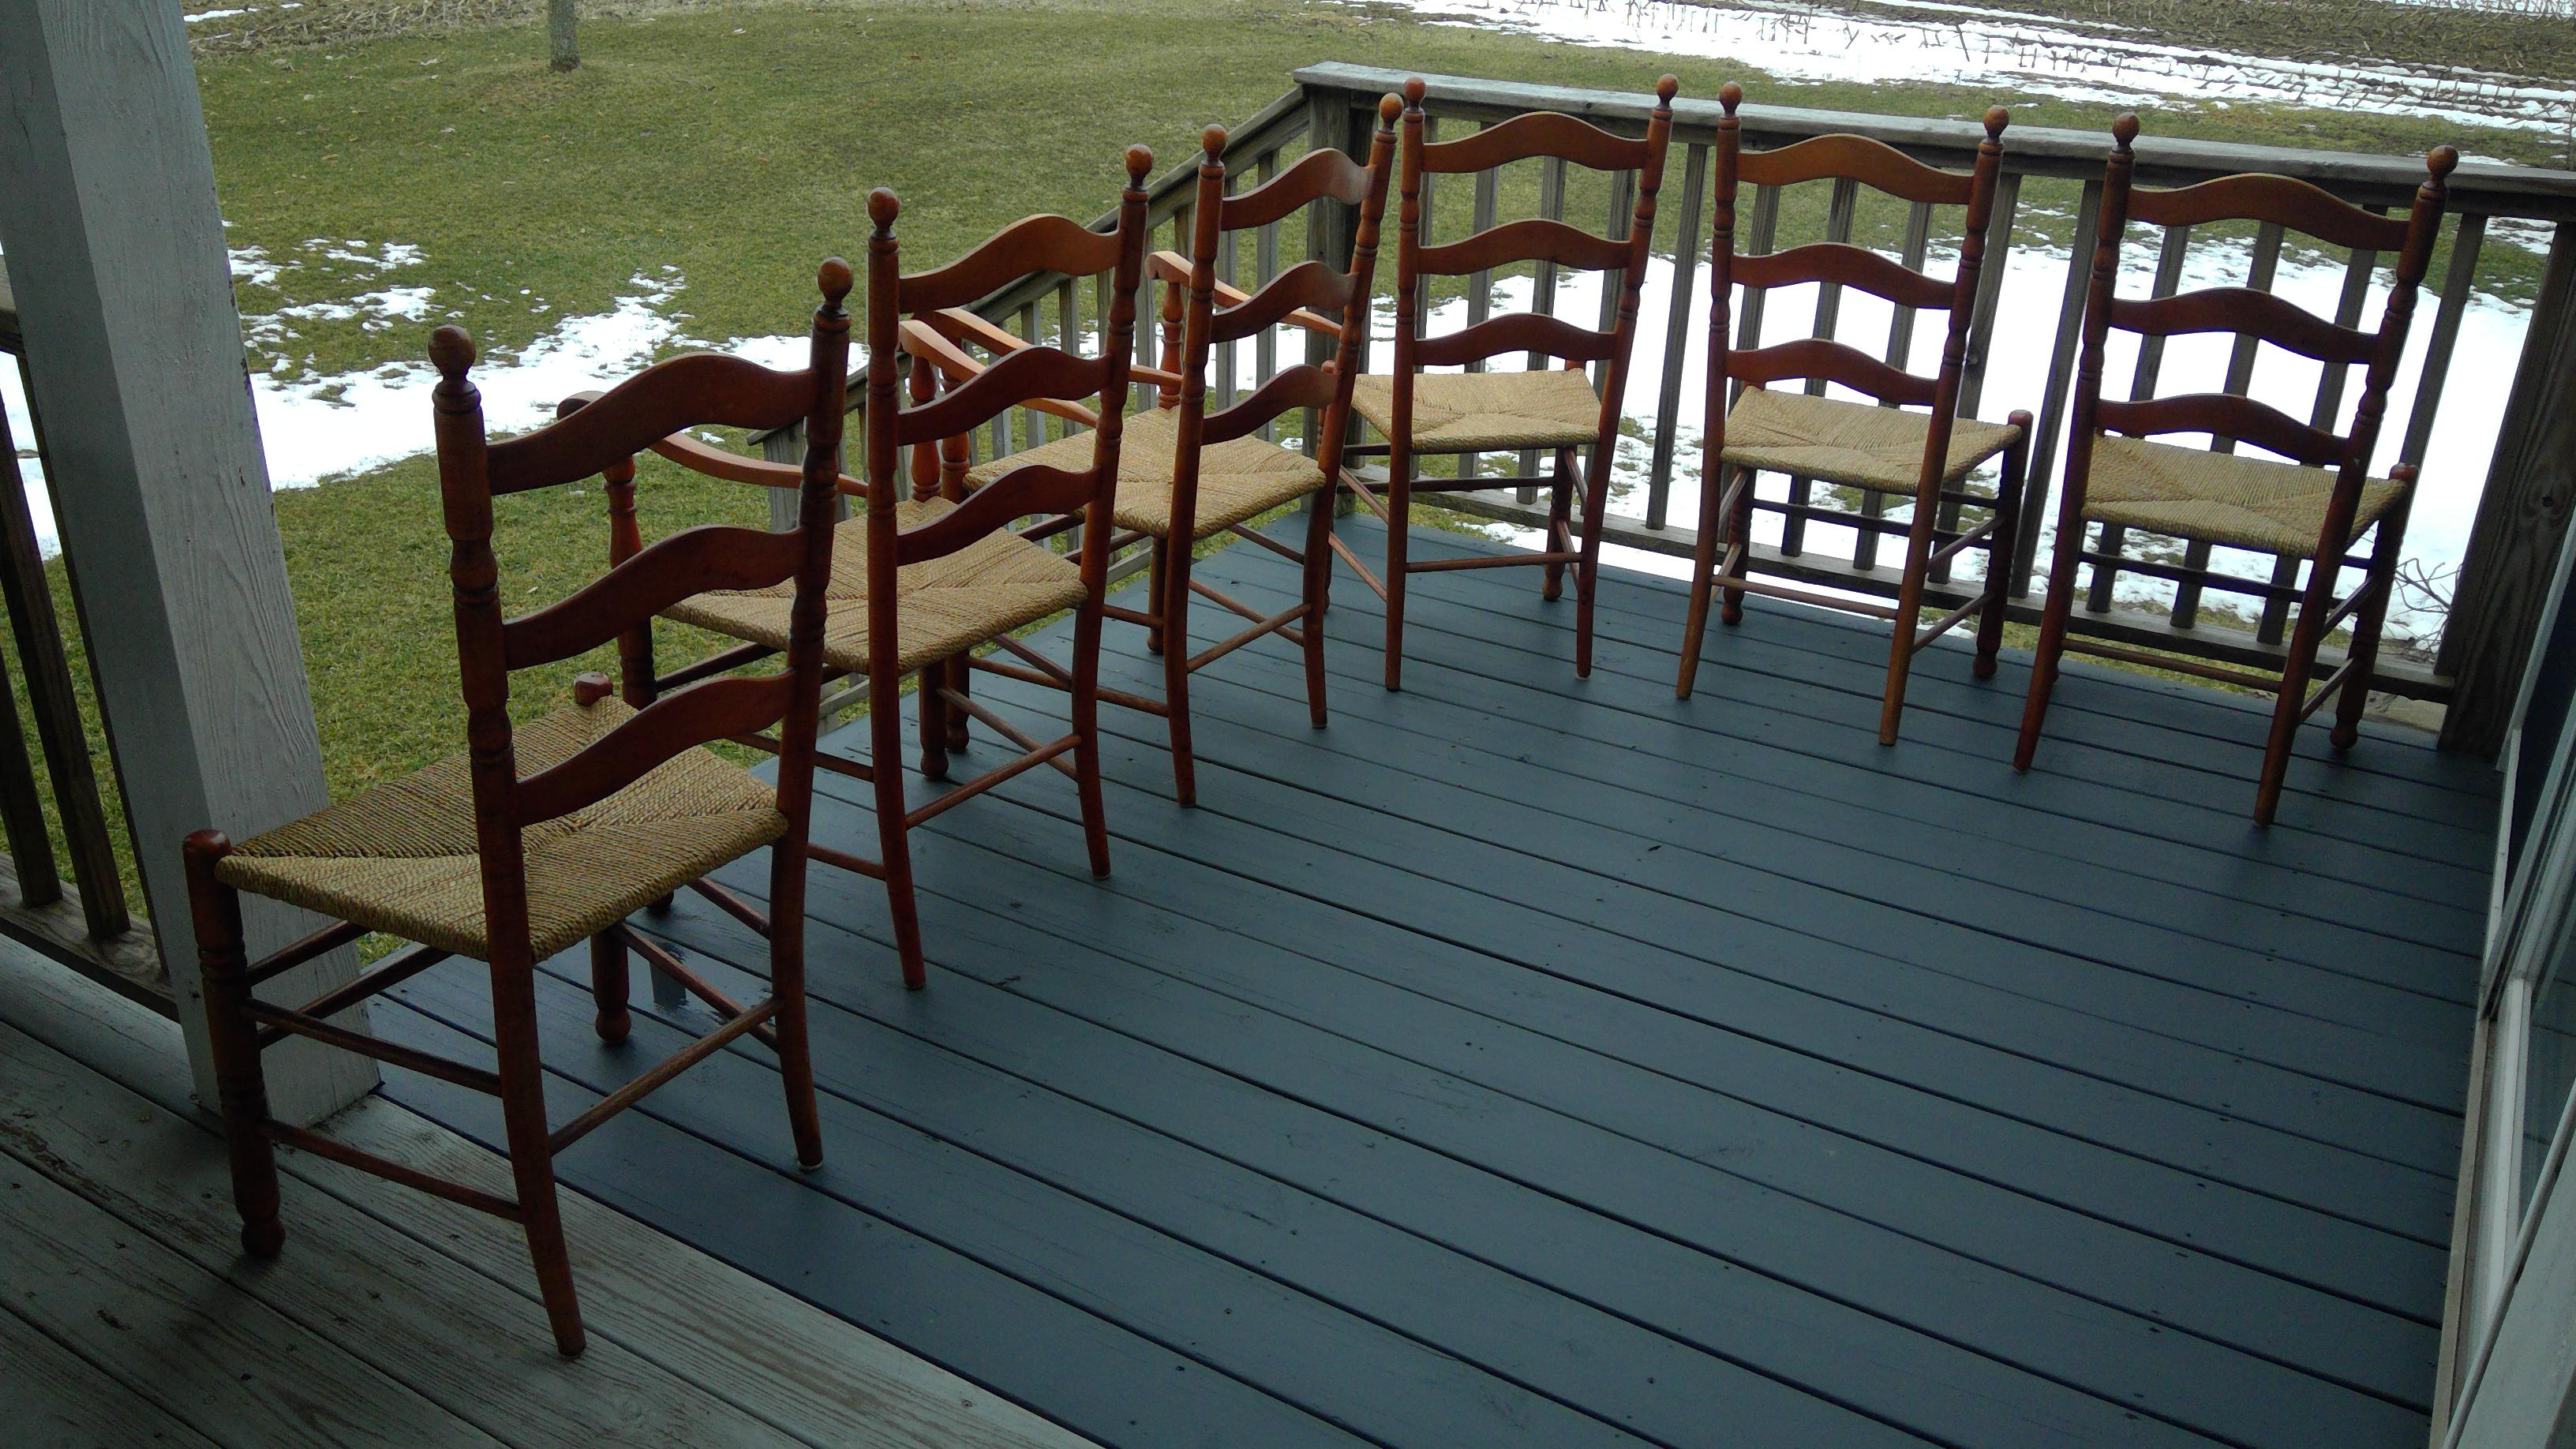 Early American Dining Room Furniture: (Last Chance!) Expandable Bogart-Built Early American Dining Table & Chairs (6 Chairs, 2 With